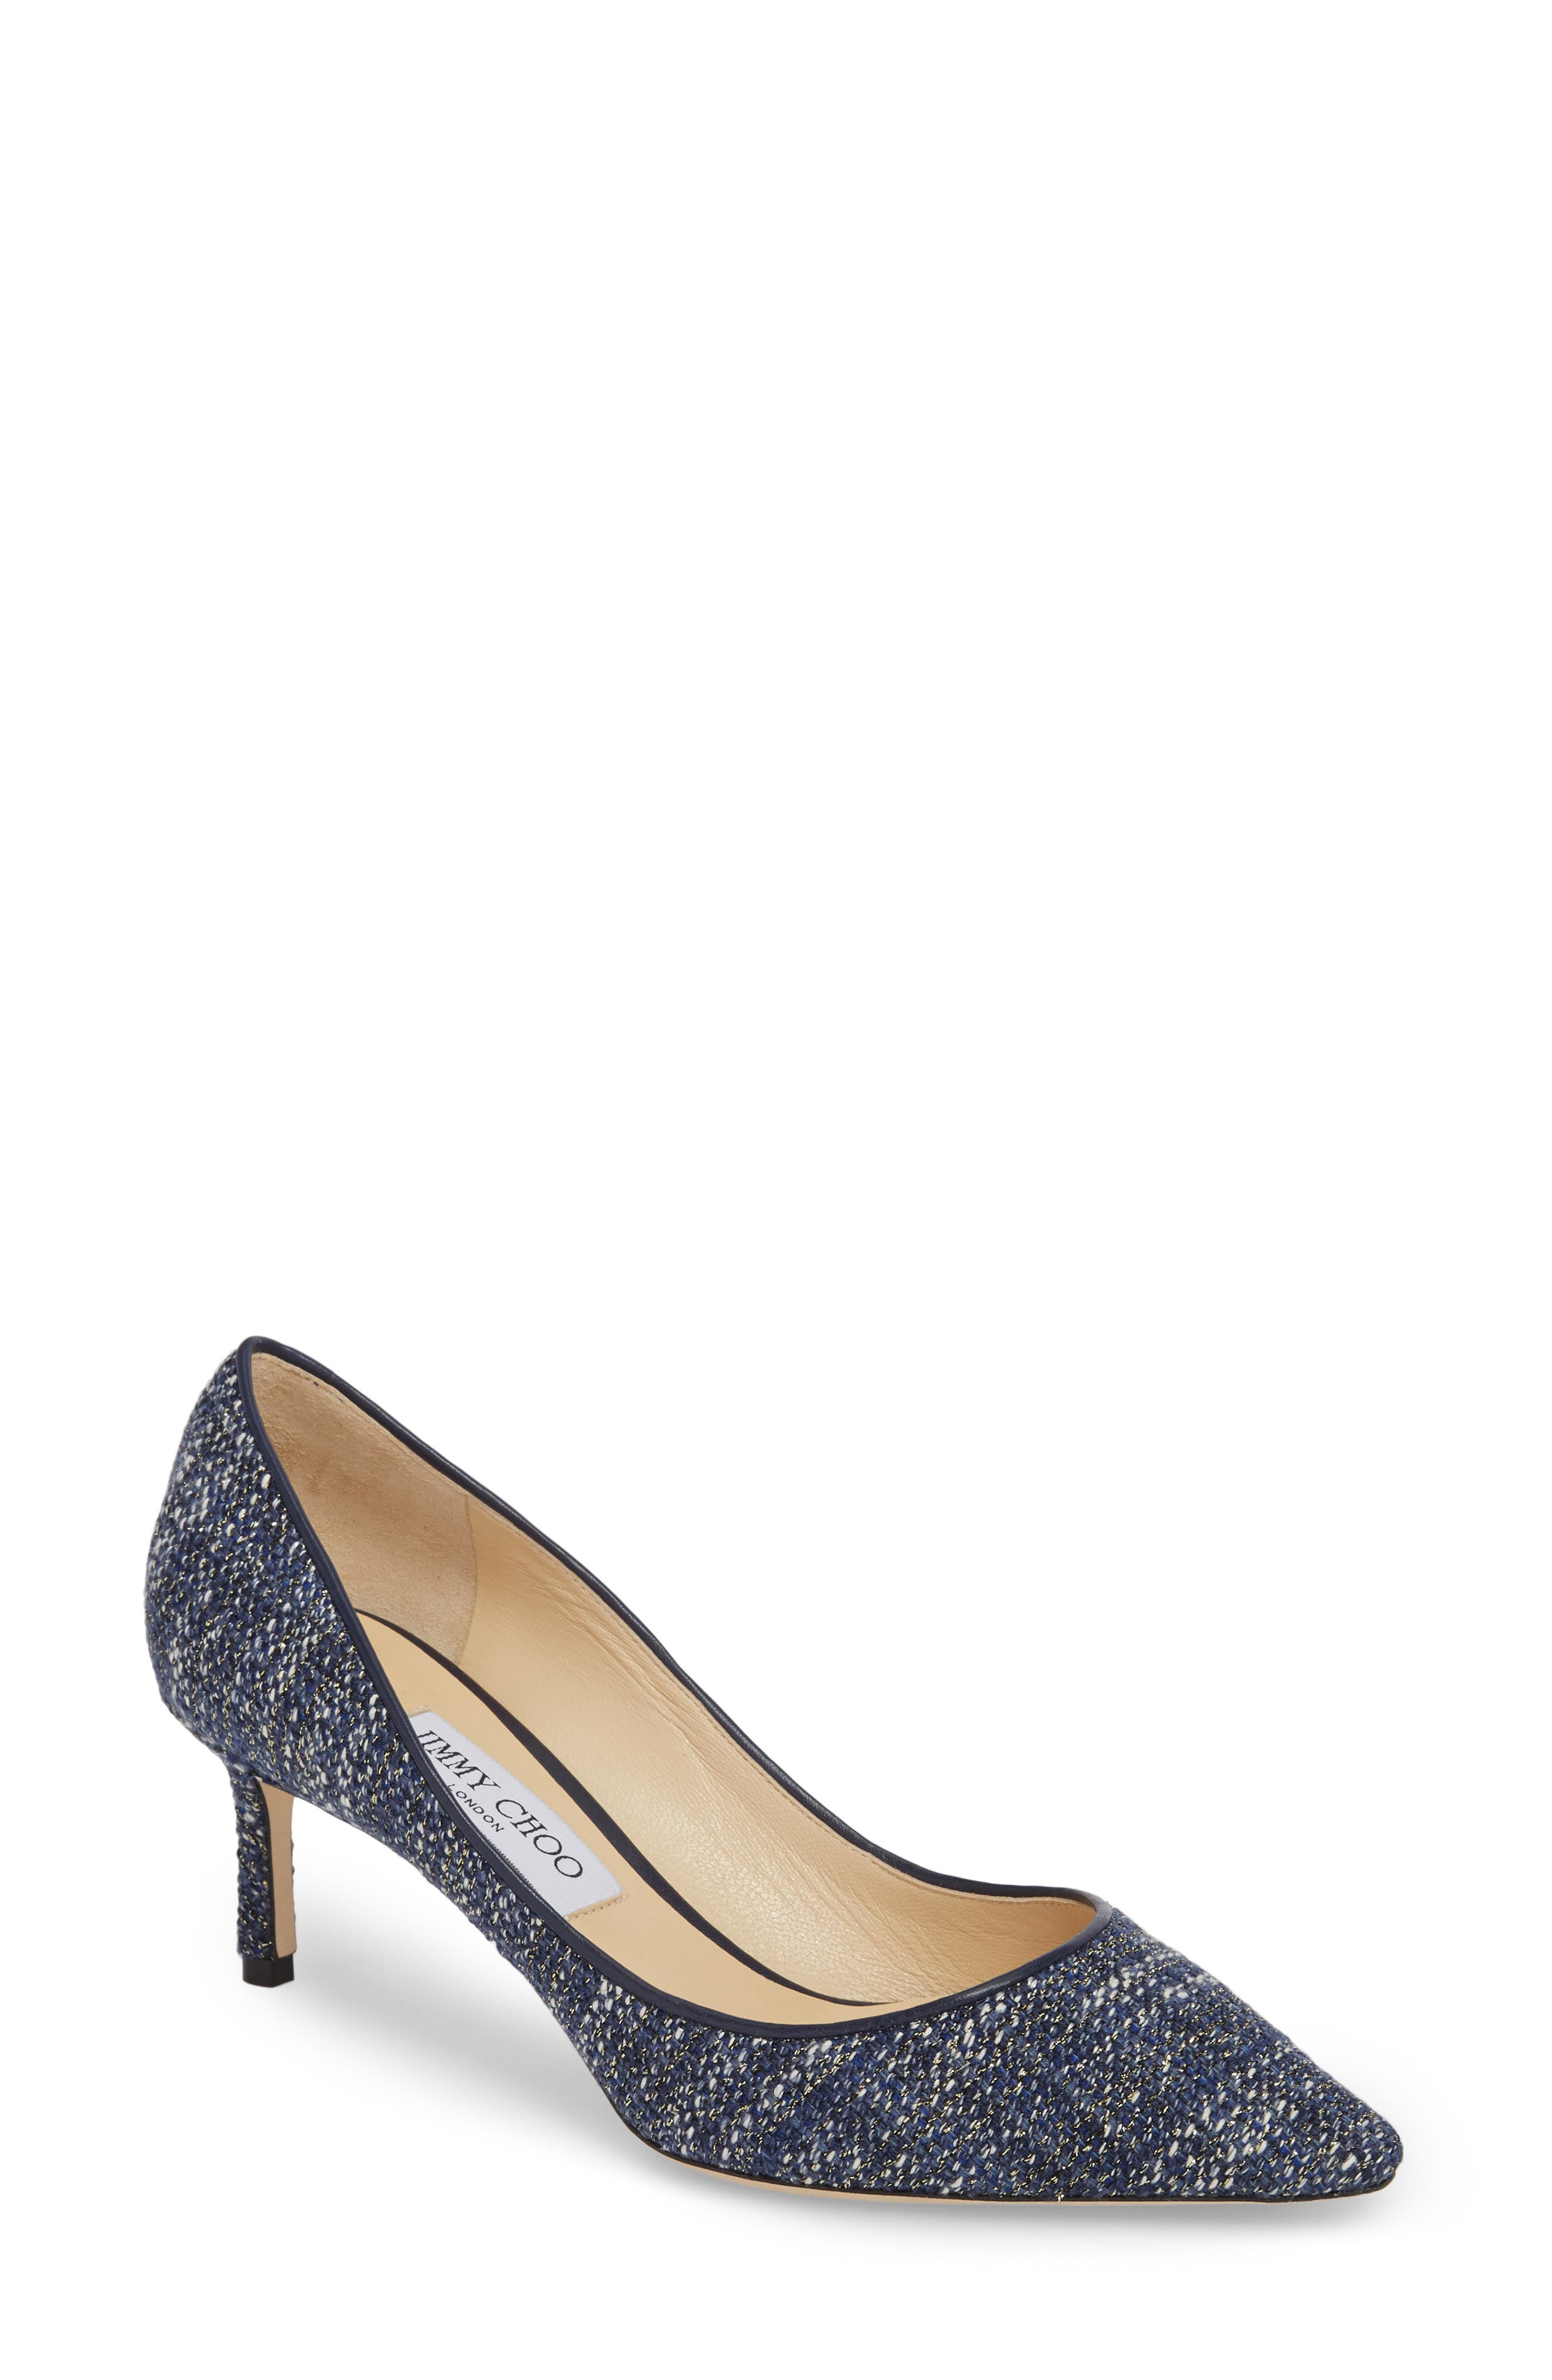 Romy Woven Pointy Toe Pump,                         Main,                         color, 410